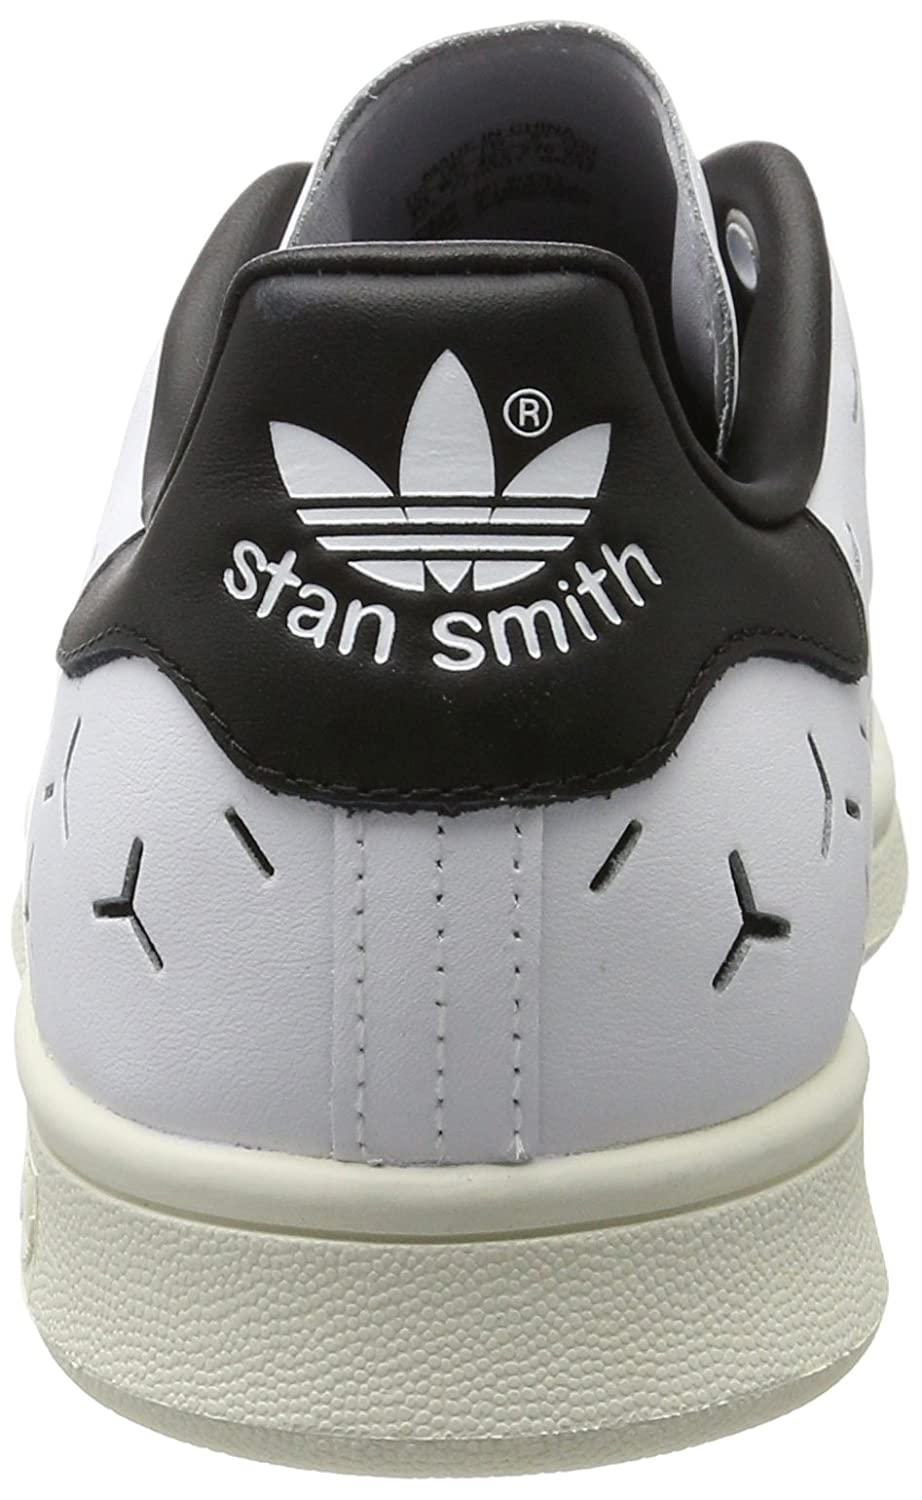 Adidas Damen Stan Smith Weiß/Core Sneaker Weiß (Footwear Weiß/Footwear Weiß/Core Smith schwarz) ef30c3